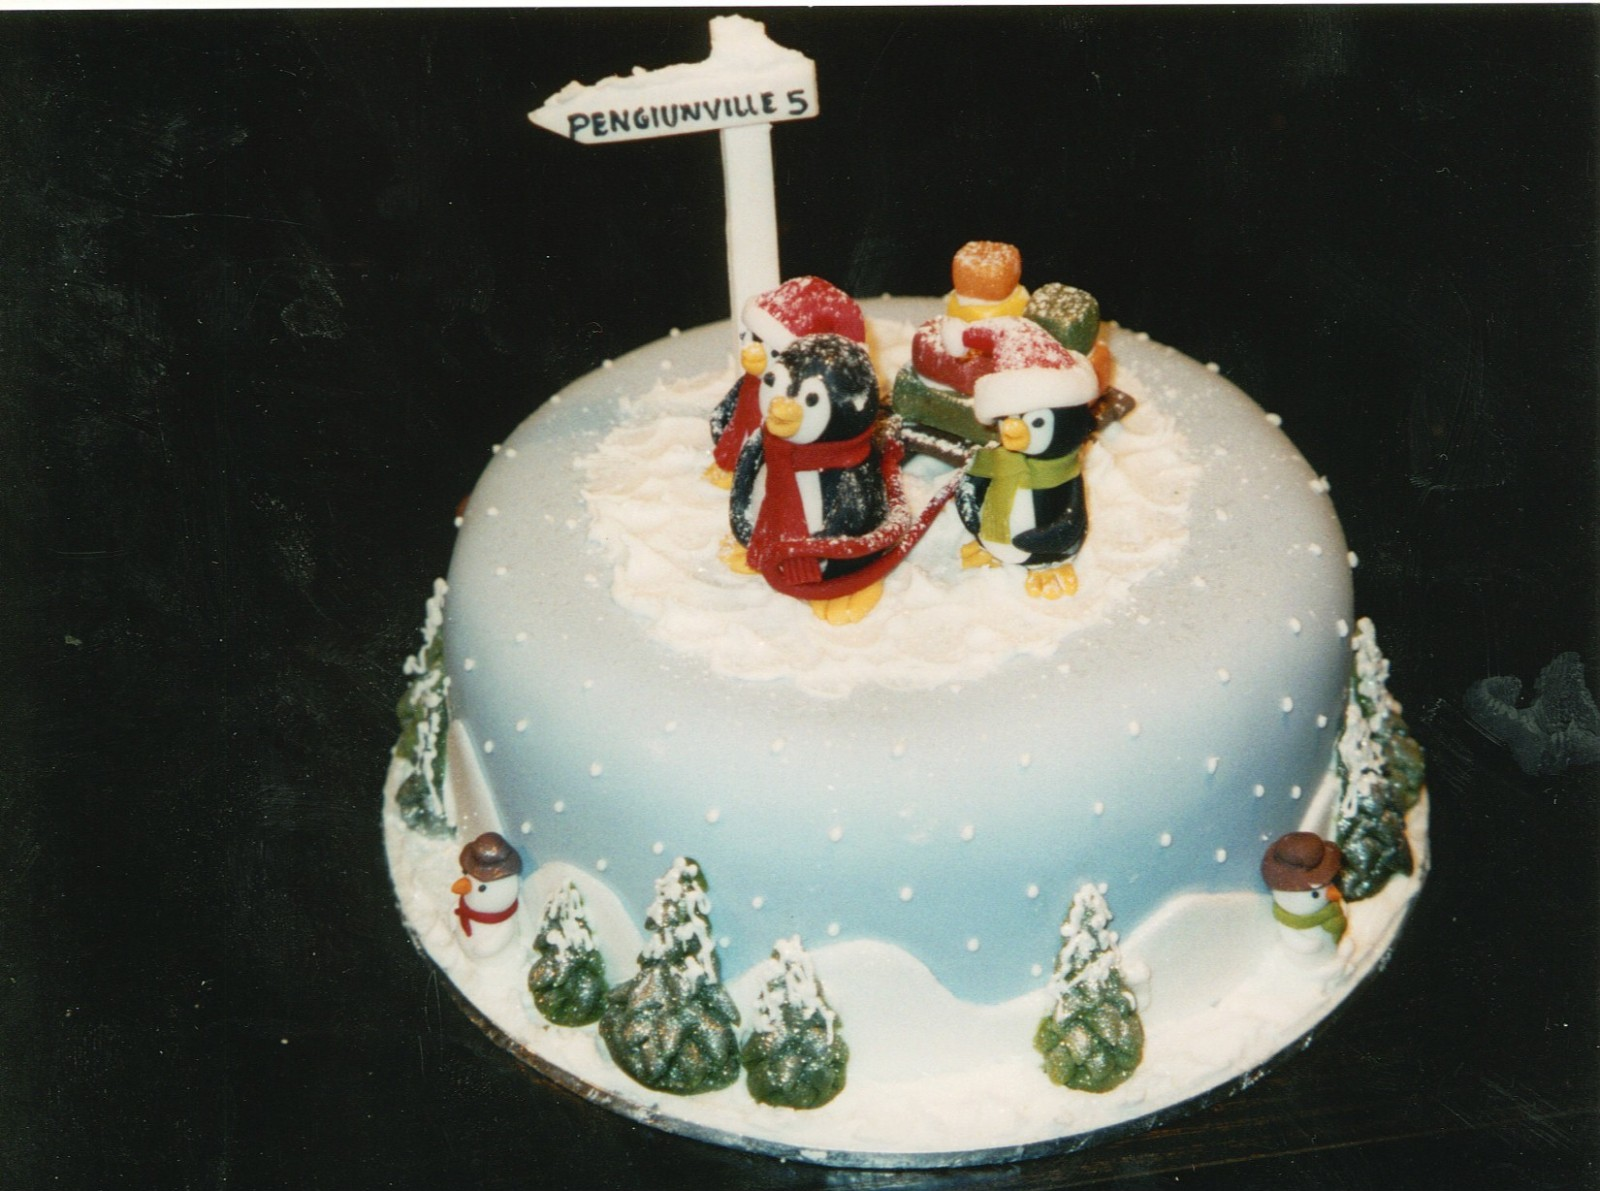 Novelty Christmas Cake Images : Novelty Penguin Christmas Cake   Susie s Cakes